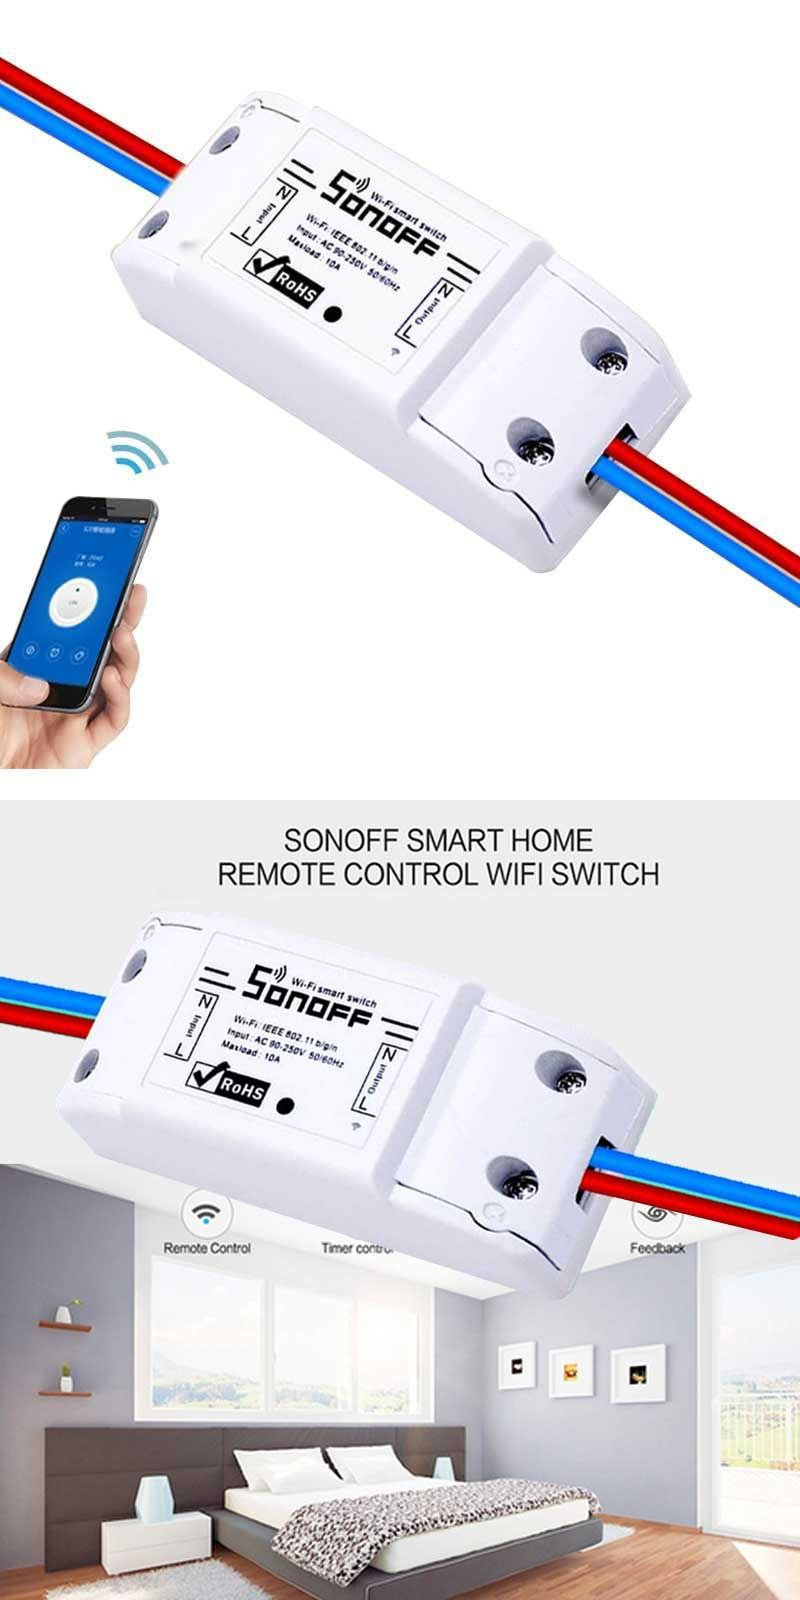 ITEAD Sonoff WIFI Switch 1 Way Remote Control Smart Home Light ...